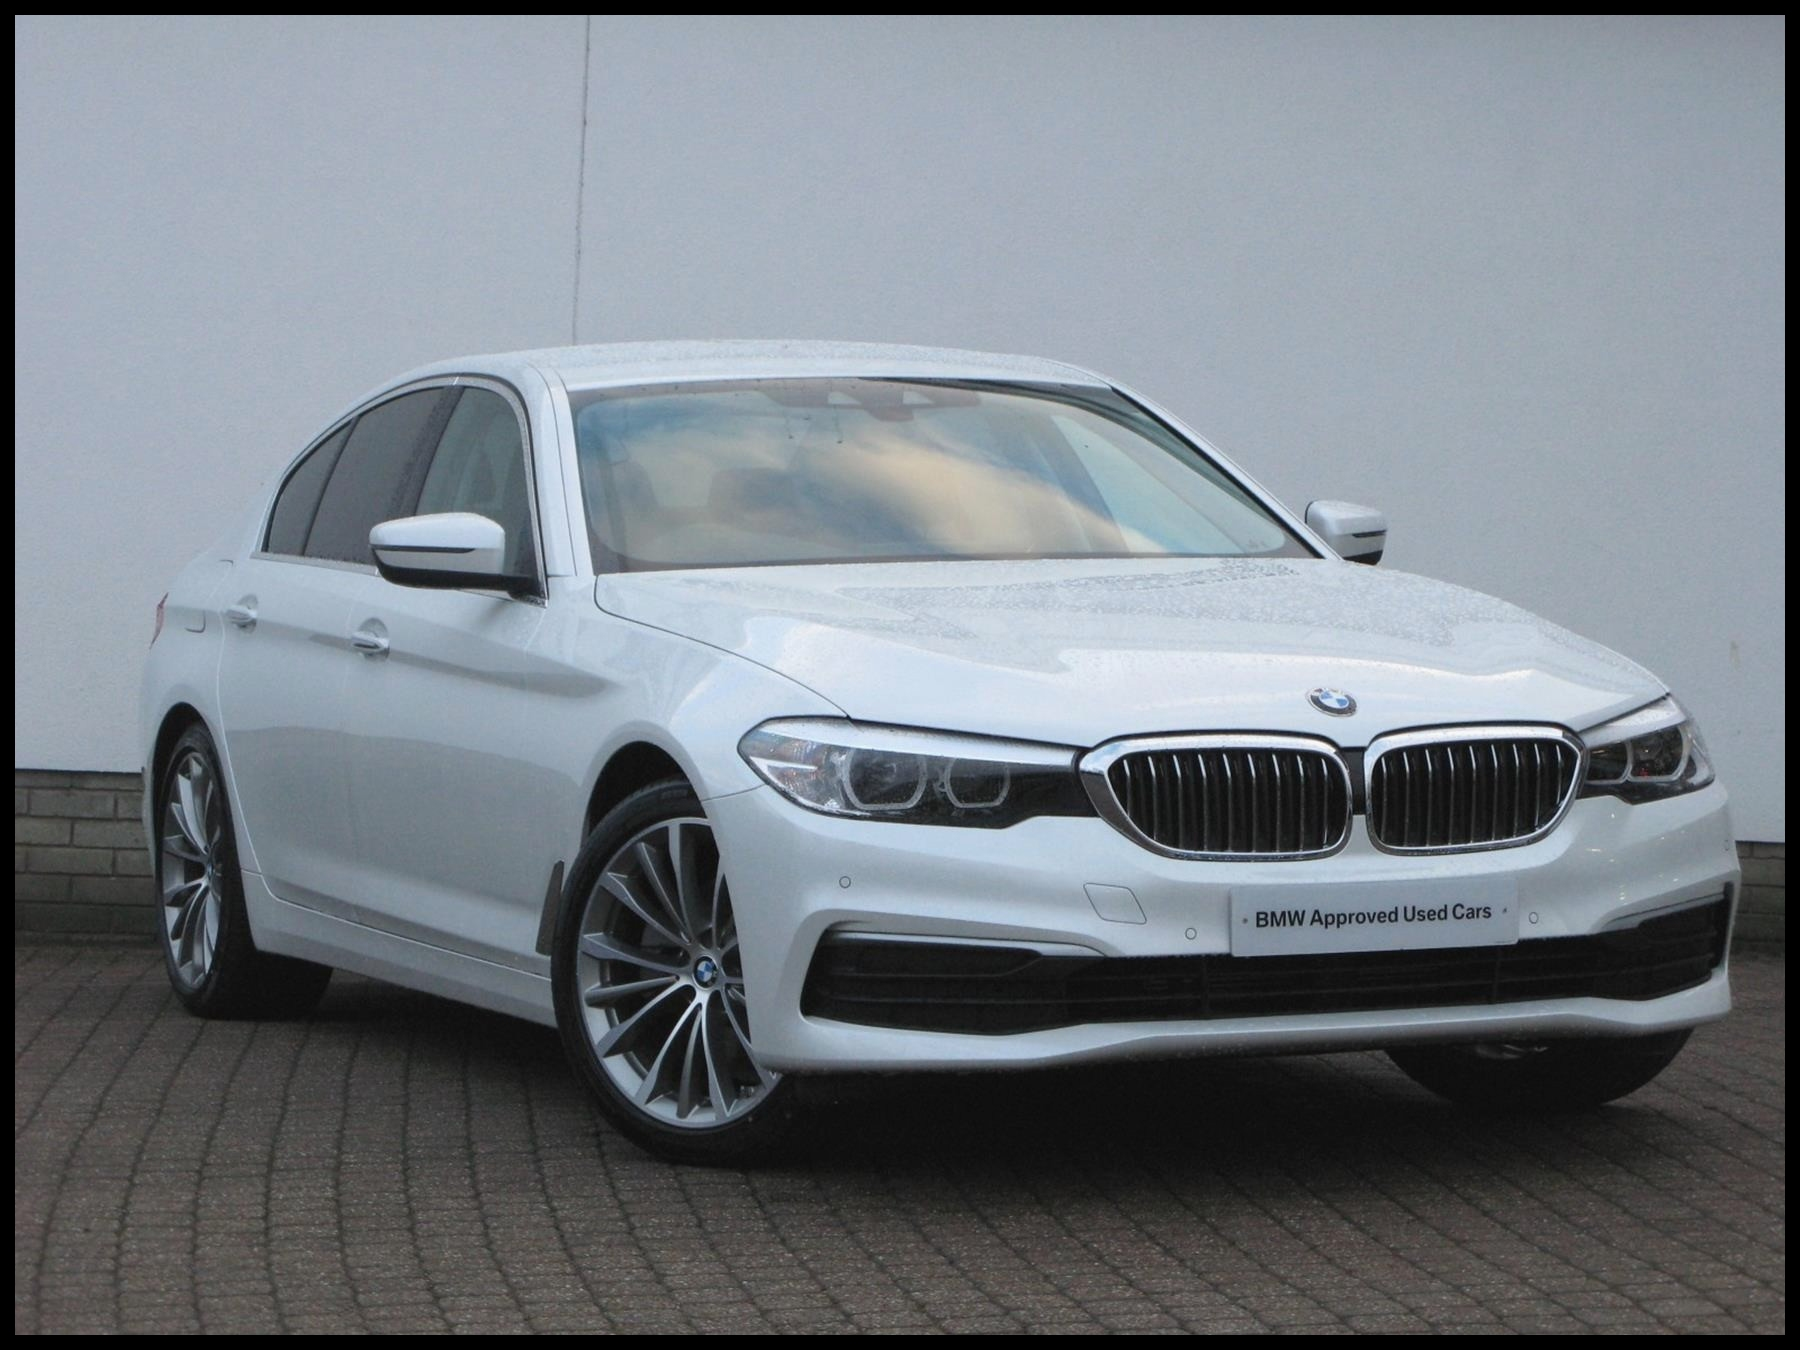 2 Door Bmw 3 Series for Sale Elegant Innovative Used 2017 Bmw 5 Series G30 520d